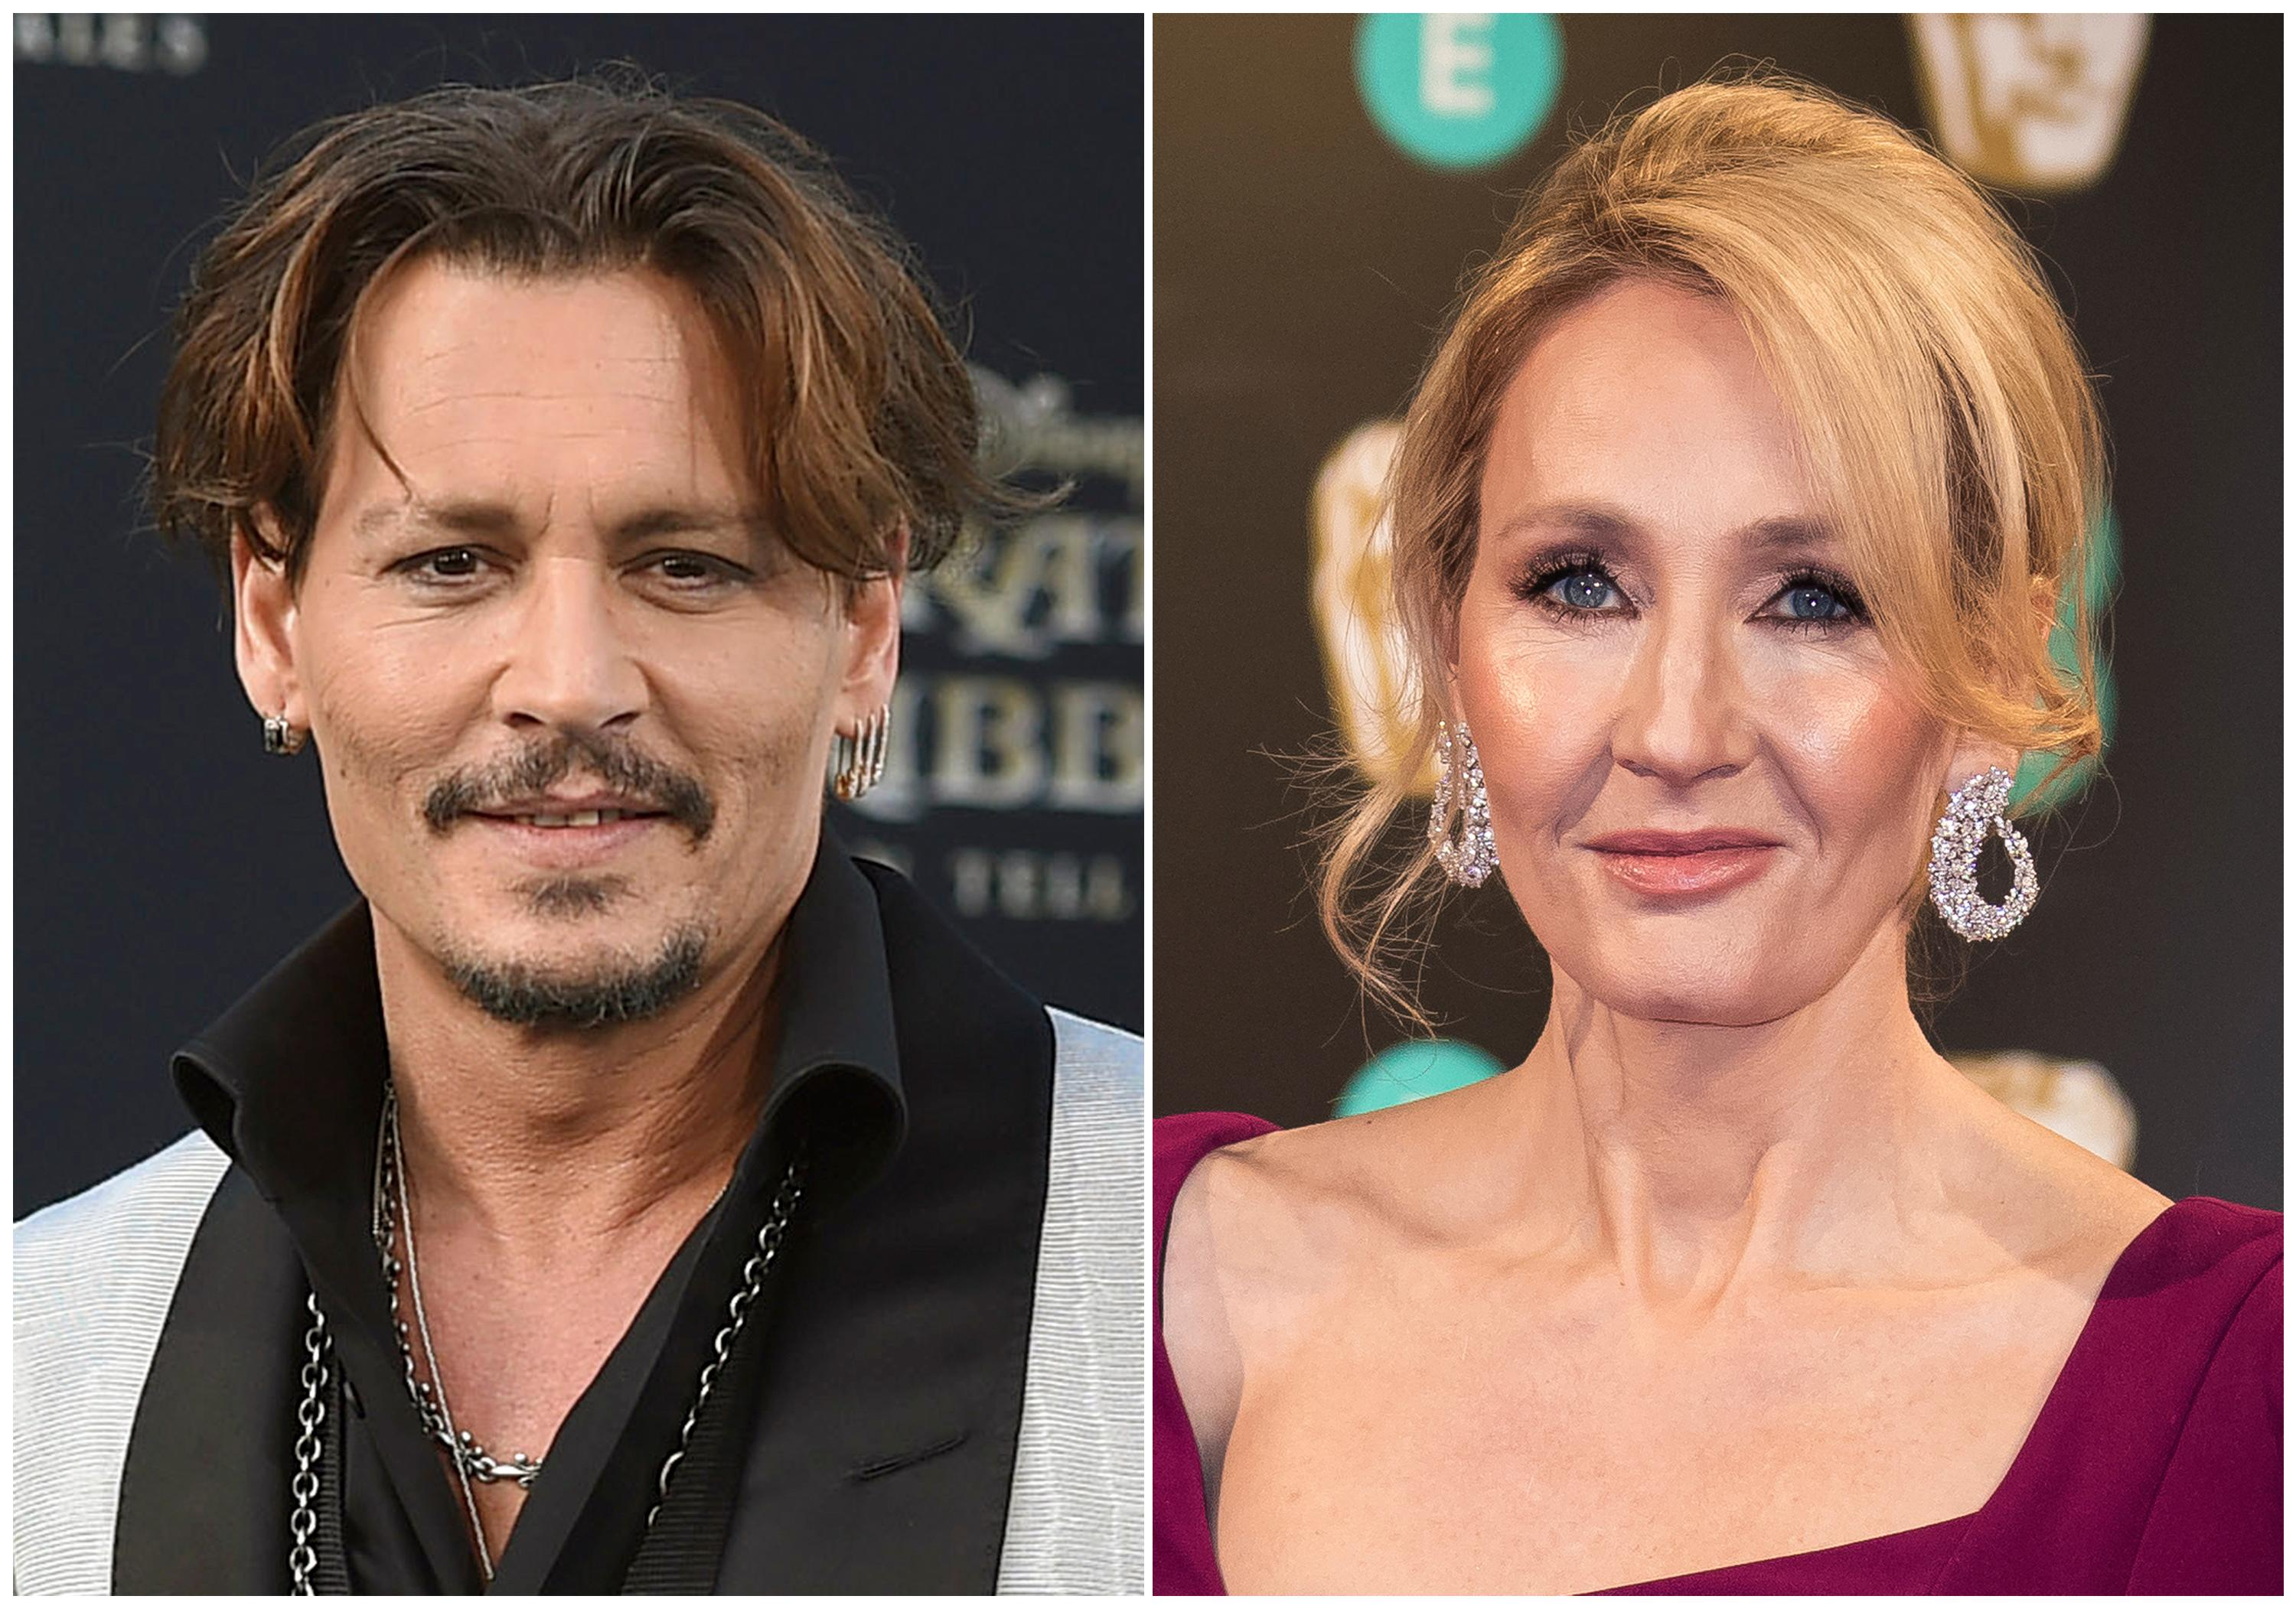 "In this combination photo, Johnny Depp appears at the Los Angeles premiere of ""Pirates of the Caribbean: Dead Men Tell No Tales"" on May 18, 2017, left, and  J.K. Rowling appears at the BAFTA Film Awards in London on Feb. 12, 2017. (Photos by Jordan Strauss, left, and Vianney Le Caer/Invision/AP, File)"